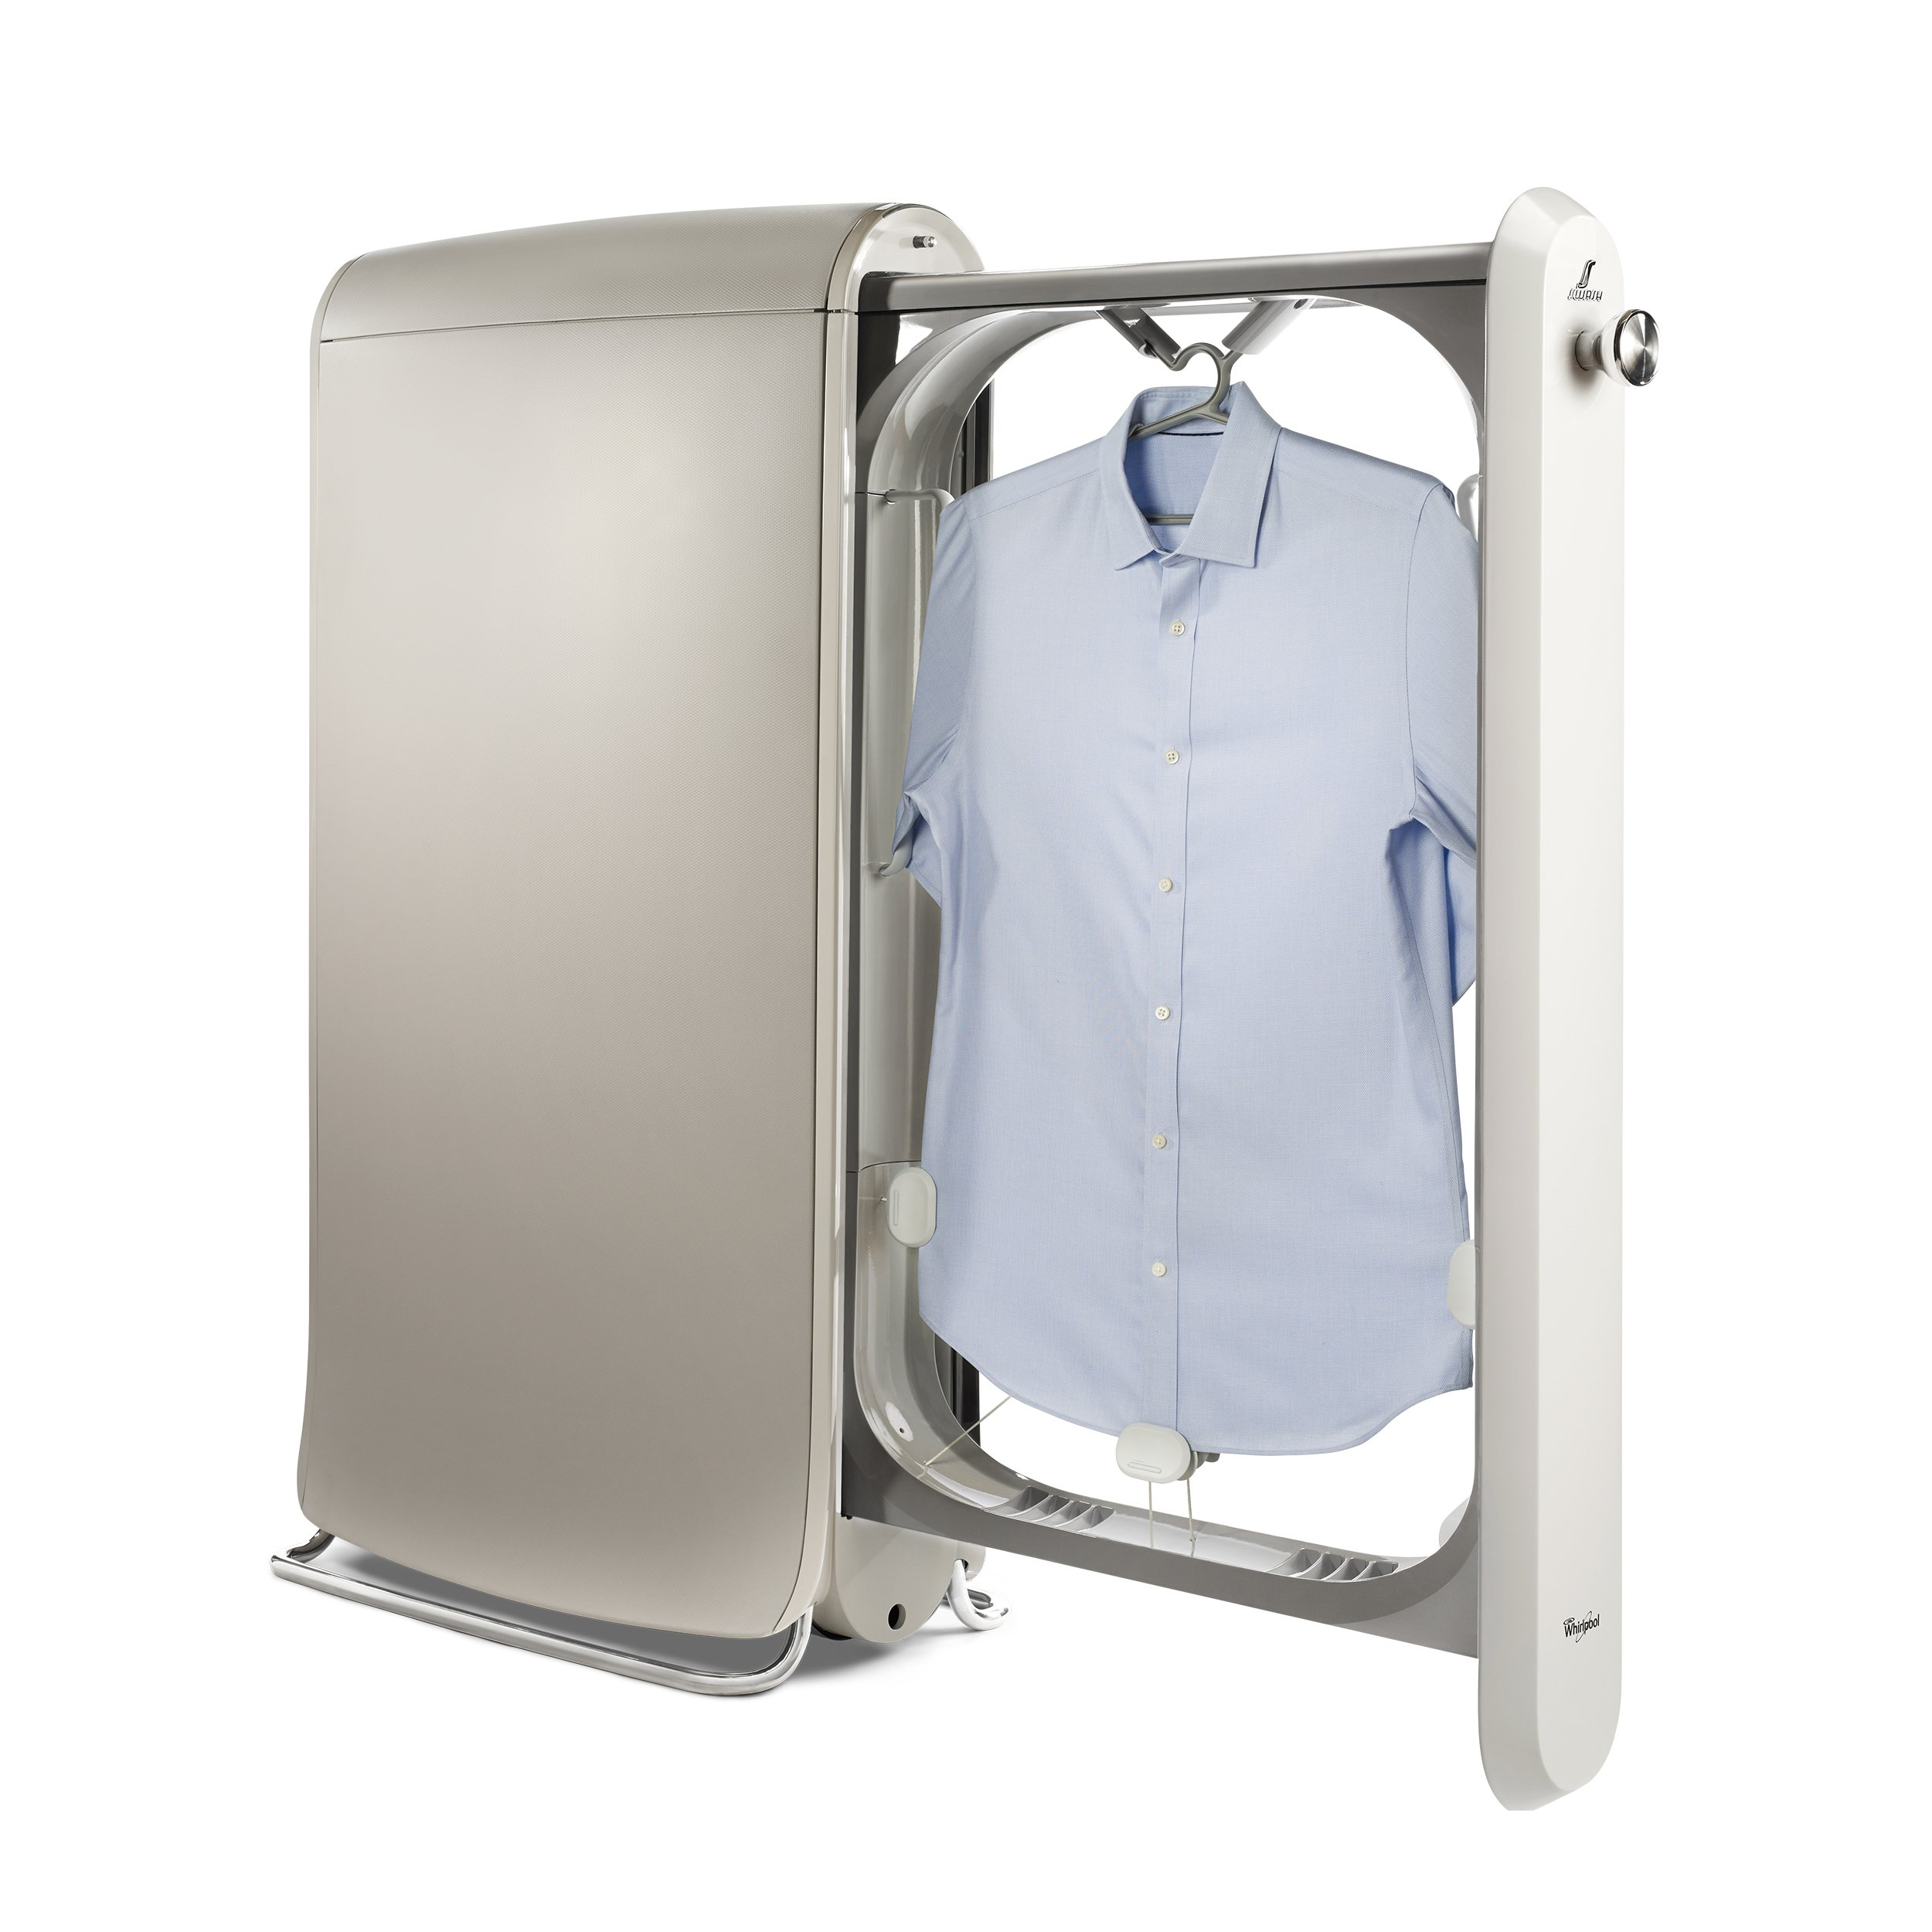 Swash SFF1000CLN Express Clothing Care System, Linen by SWASH